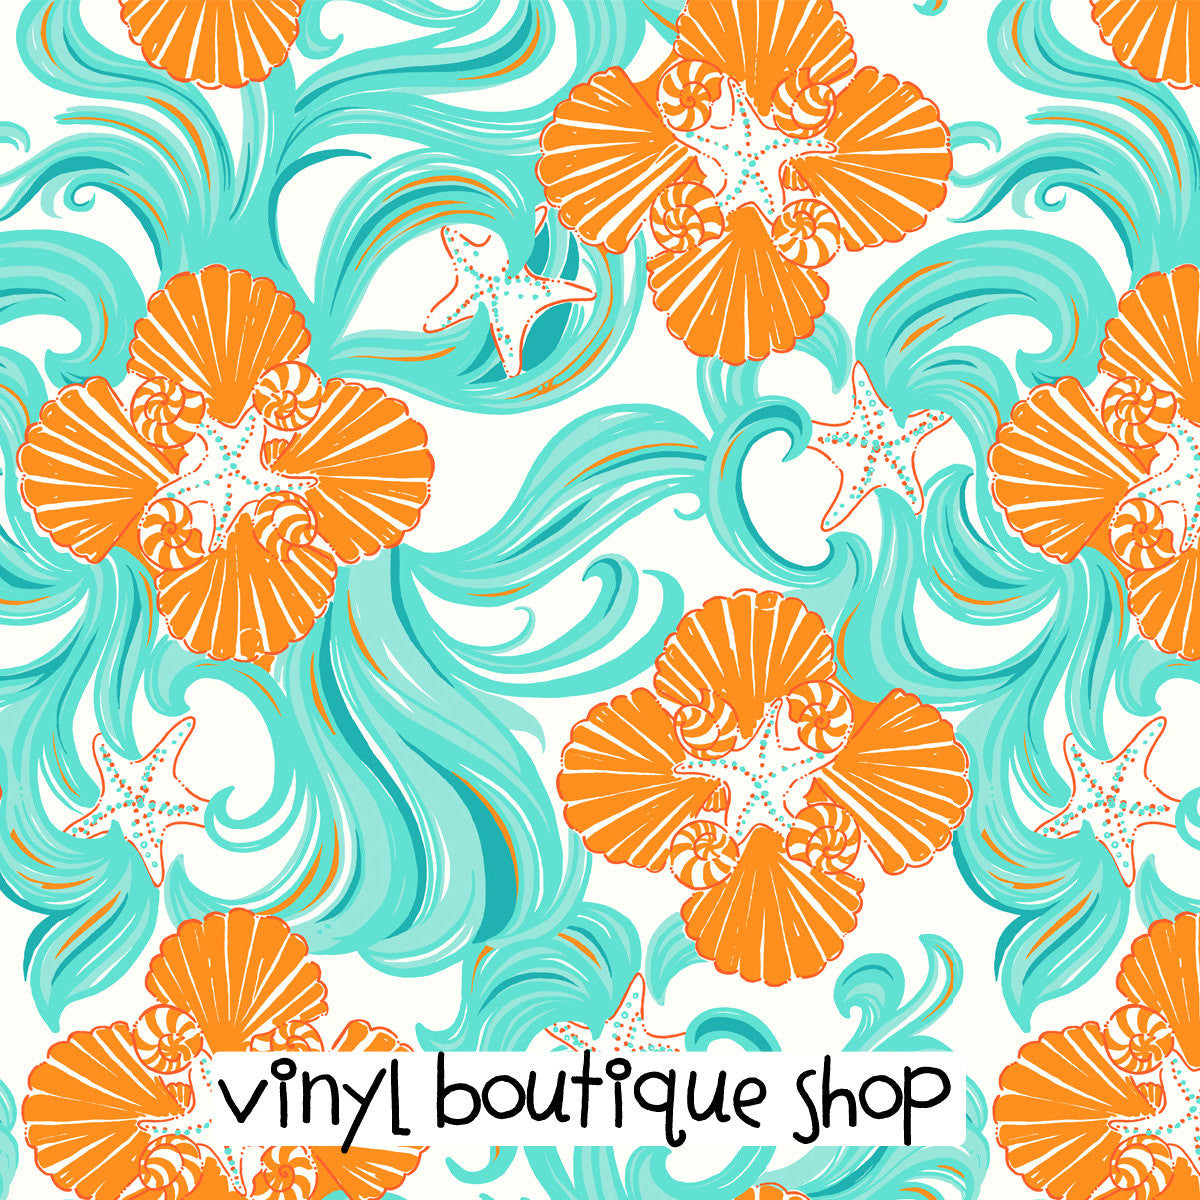 Wave Starfish Lilly Inspired Printed Patterned Craft Vinyl - Vinyl Boutique Shop